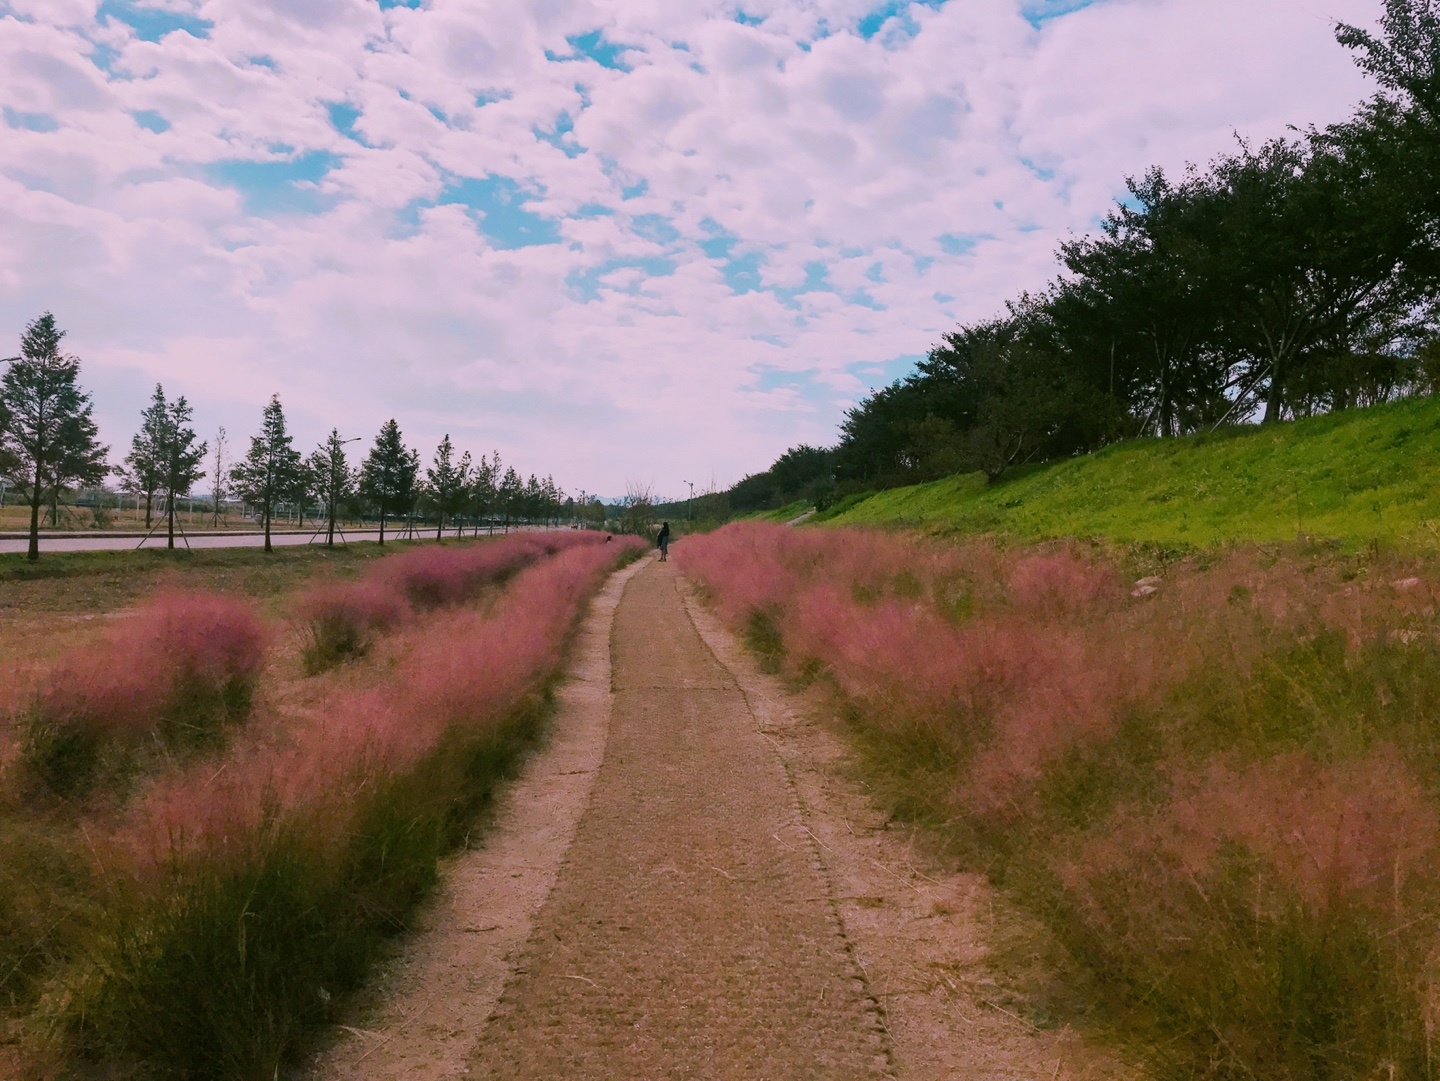 (Autumn) Busan Pink Muhly One Day Tour